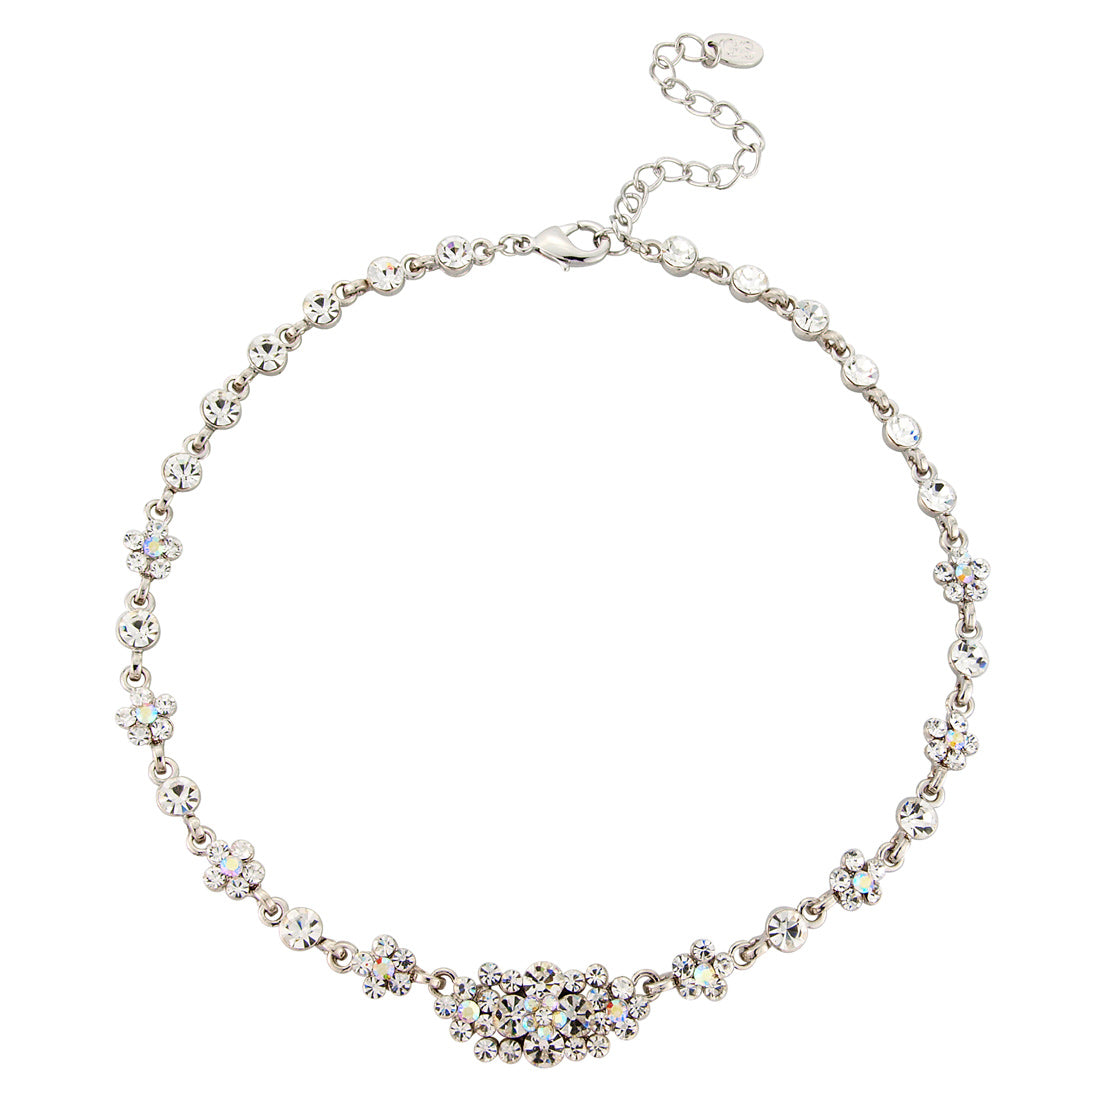 Radiant Starlet AB crystal wedding necklace